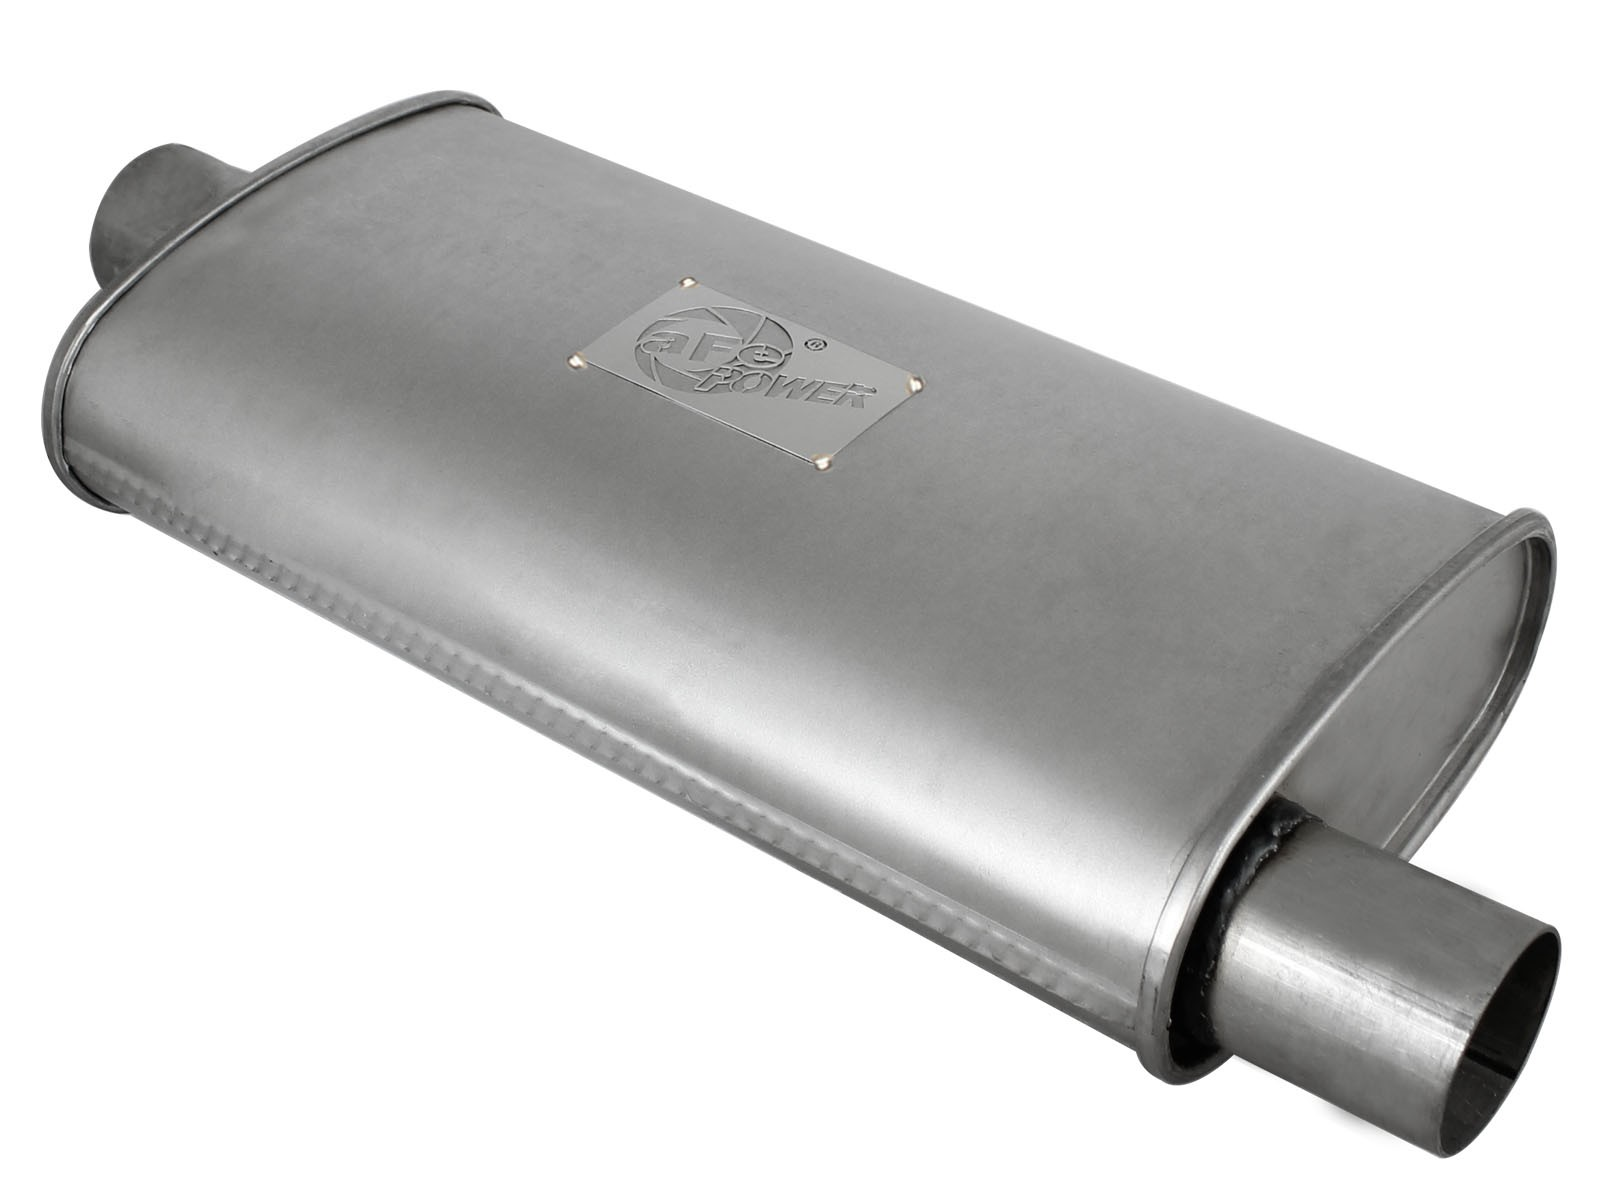 "aFe POWER 49M00002 Scorpion 2-1/2"" Aluminized Steel Muffler"